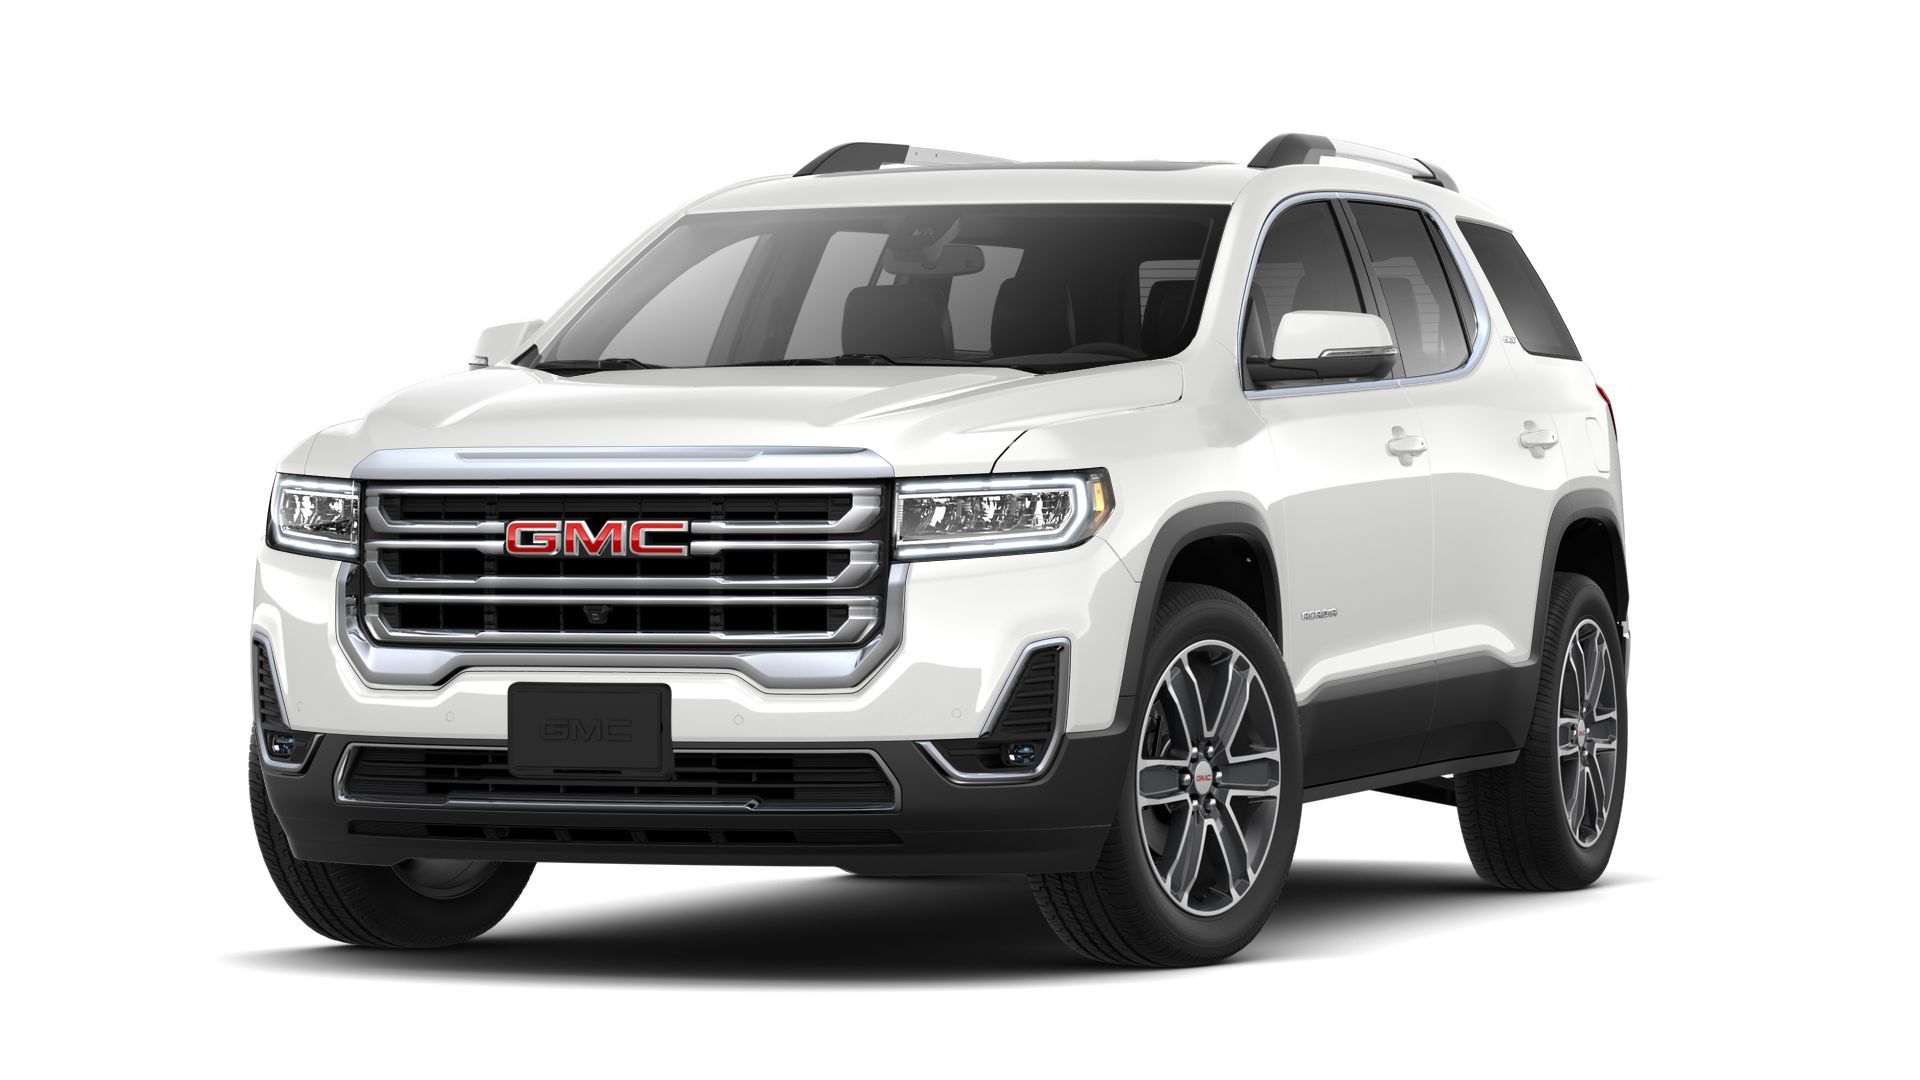 new 2021 gmc acadia slt suv in monticello #g21-122 | west